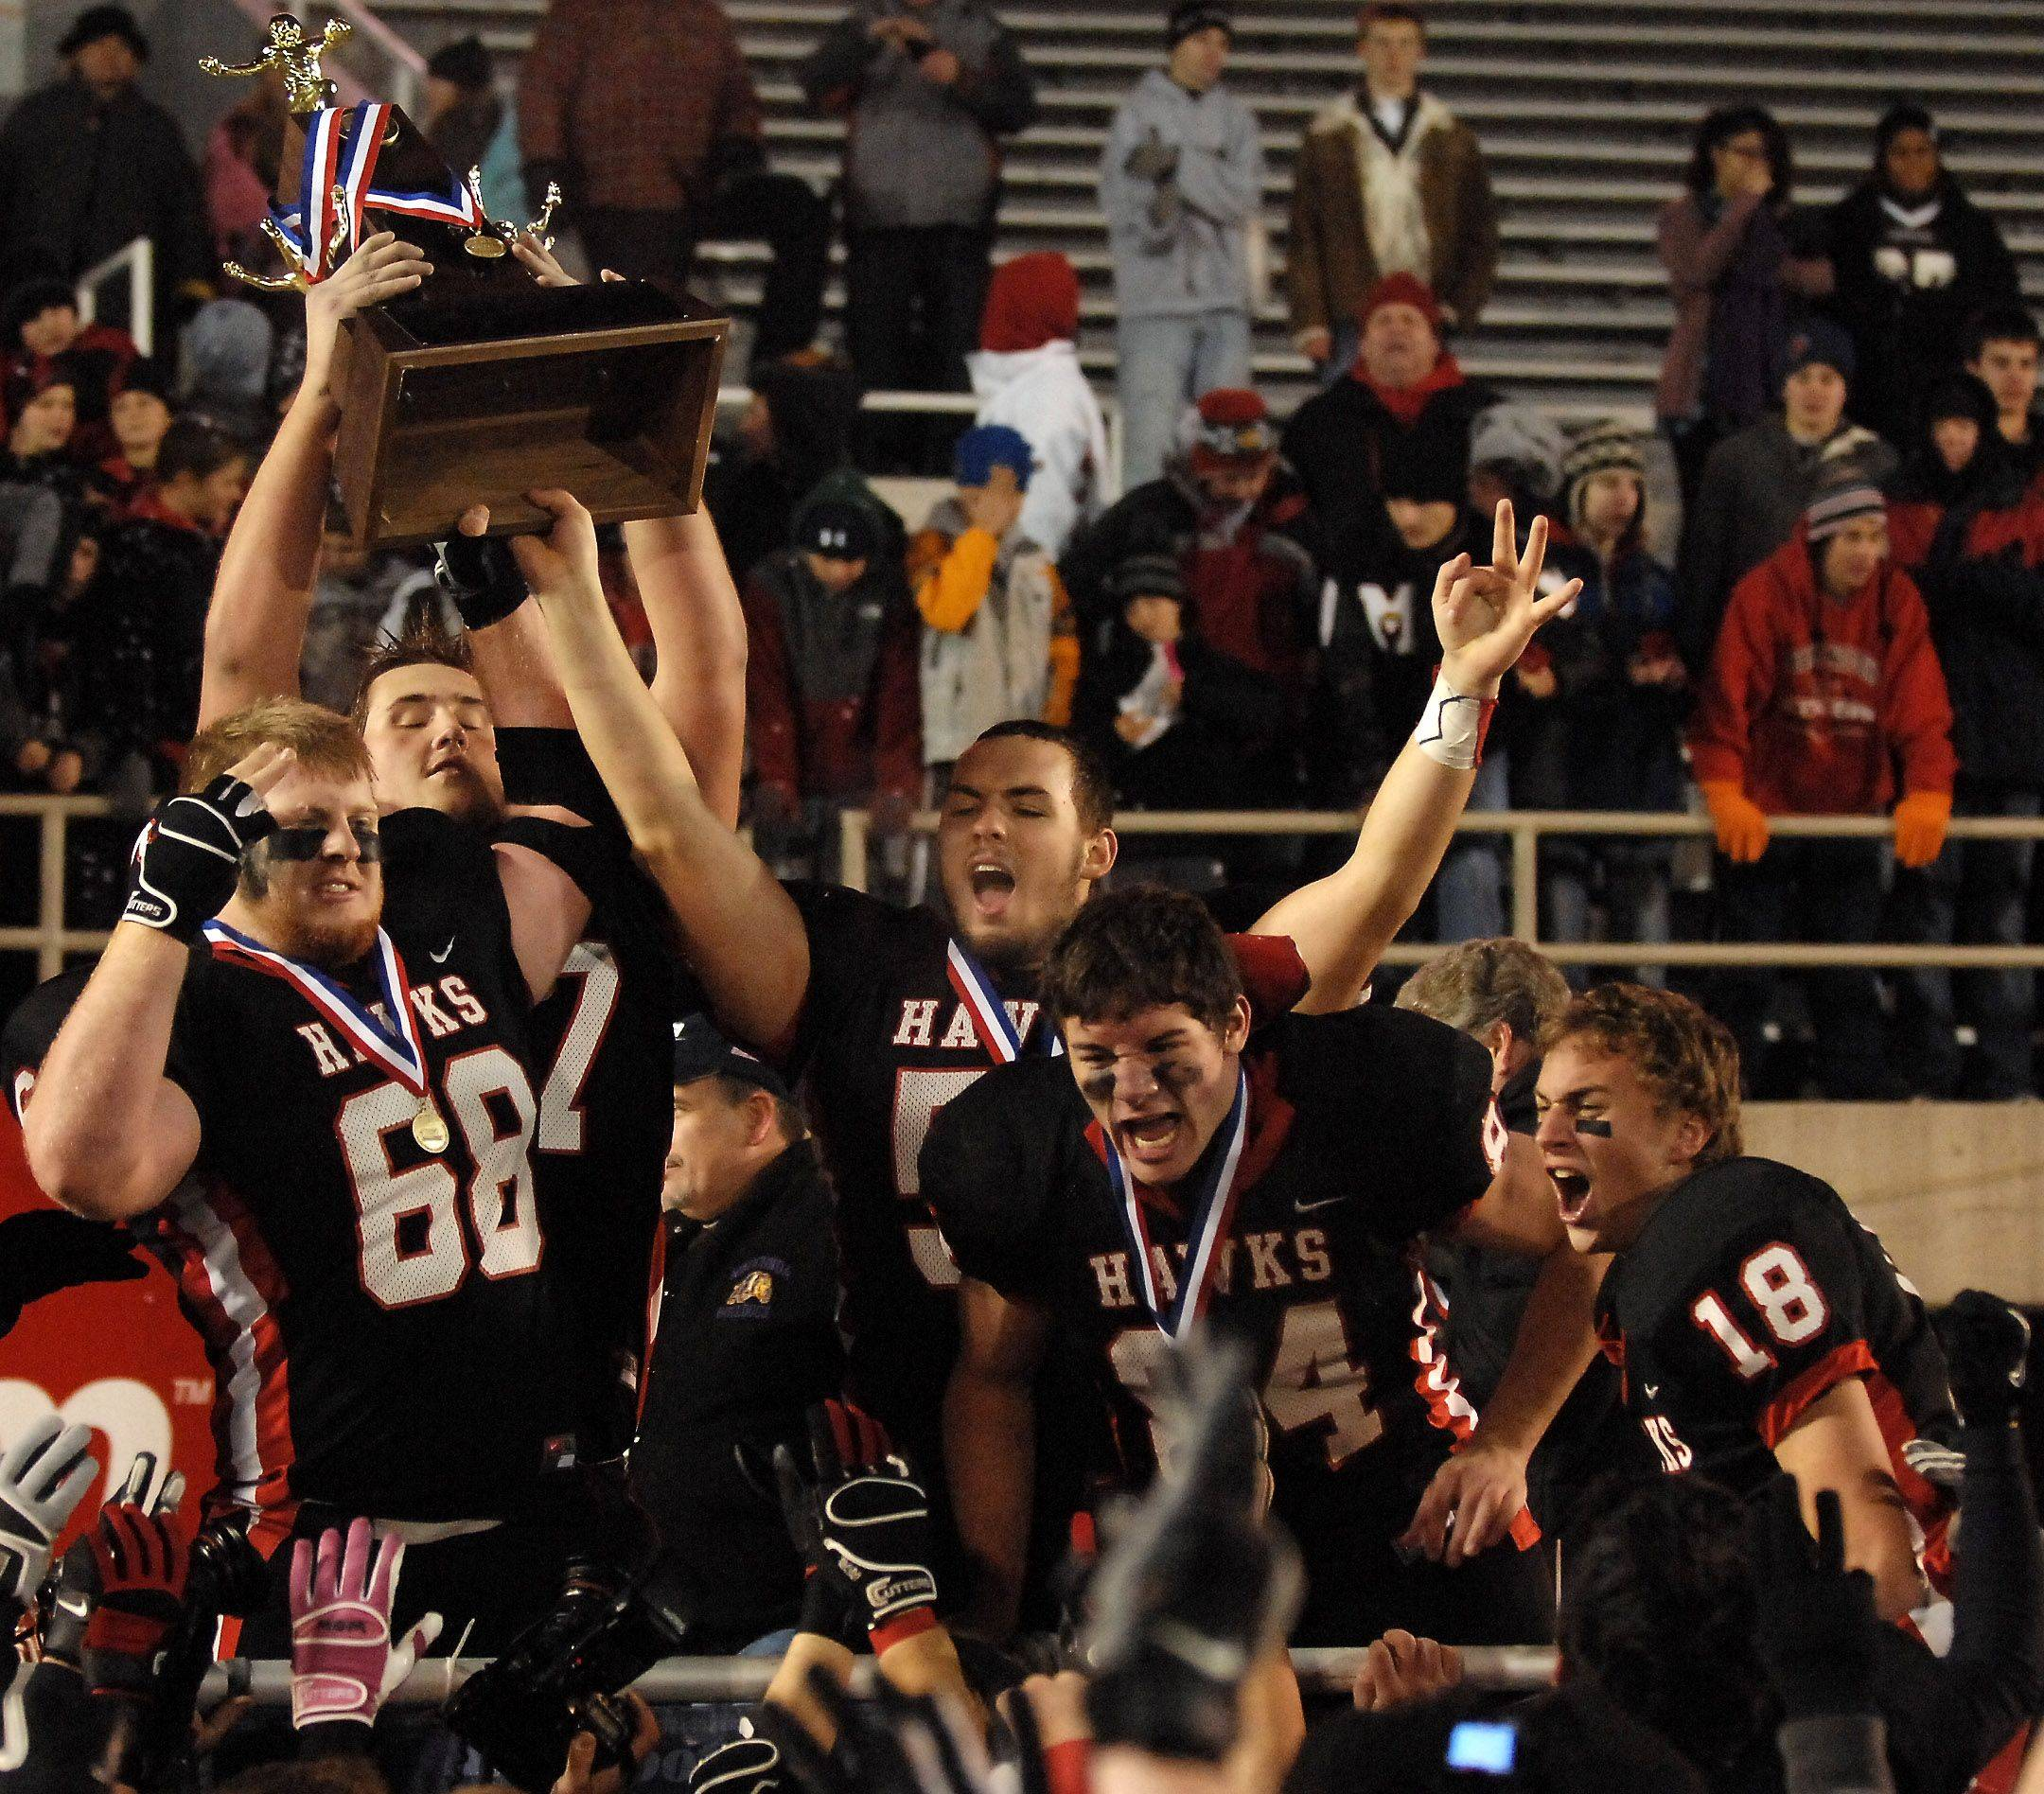 The Maine South captains hoist the championship trophy following their win over Mt. Carmel during the Class 8A state final in Champaign Saturday.